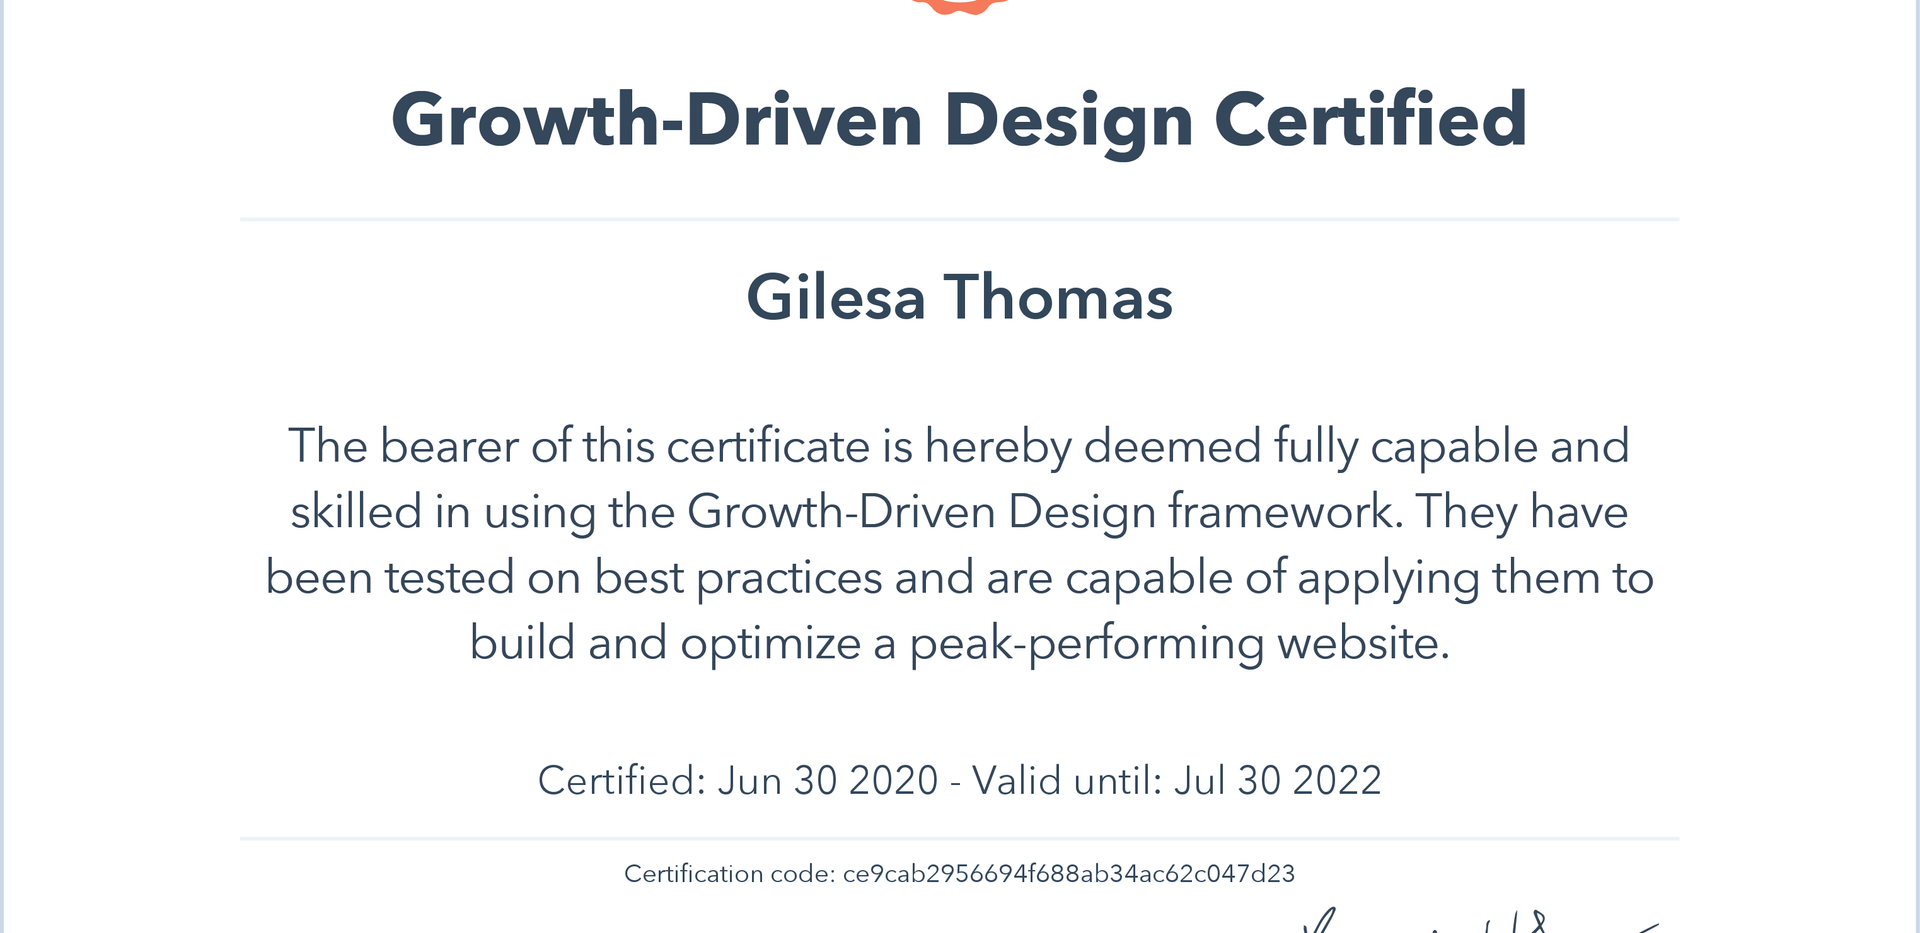 Growth-Driven Design Certfied